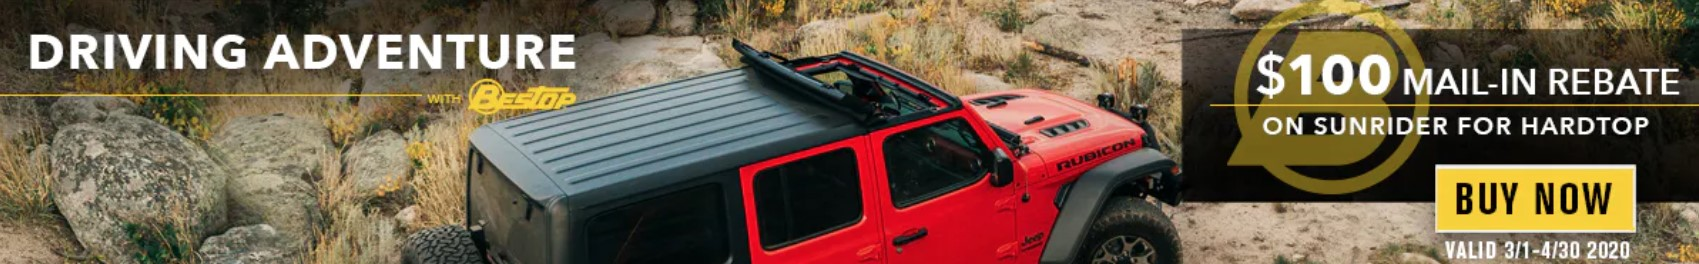 "Bestop: Get $100 Back on Sunrider for Hardtop During ""Driving Adventure"" Event"